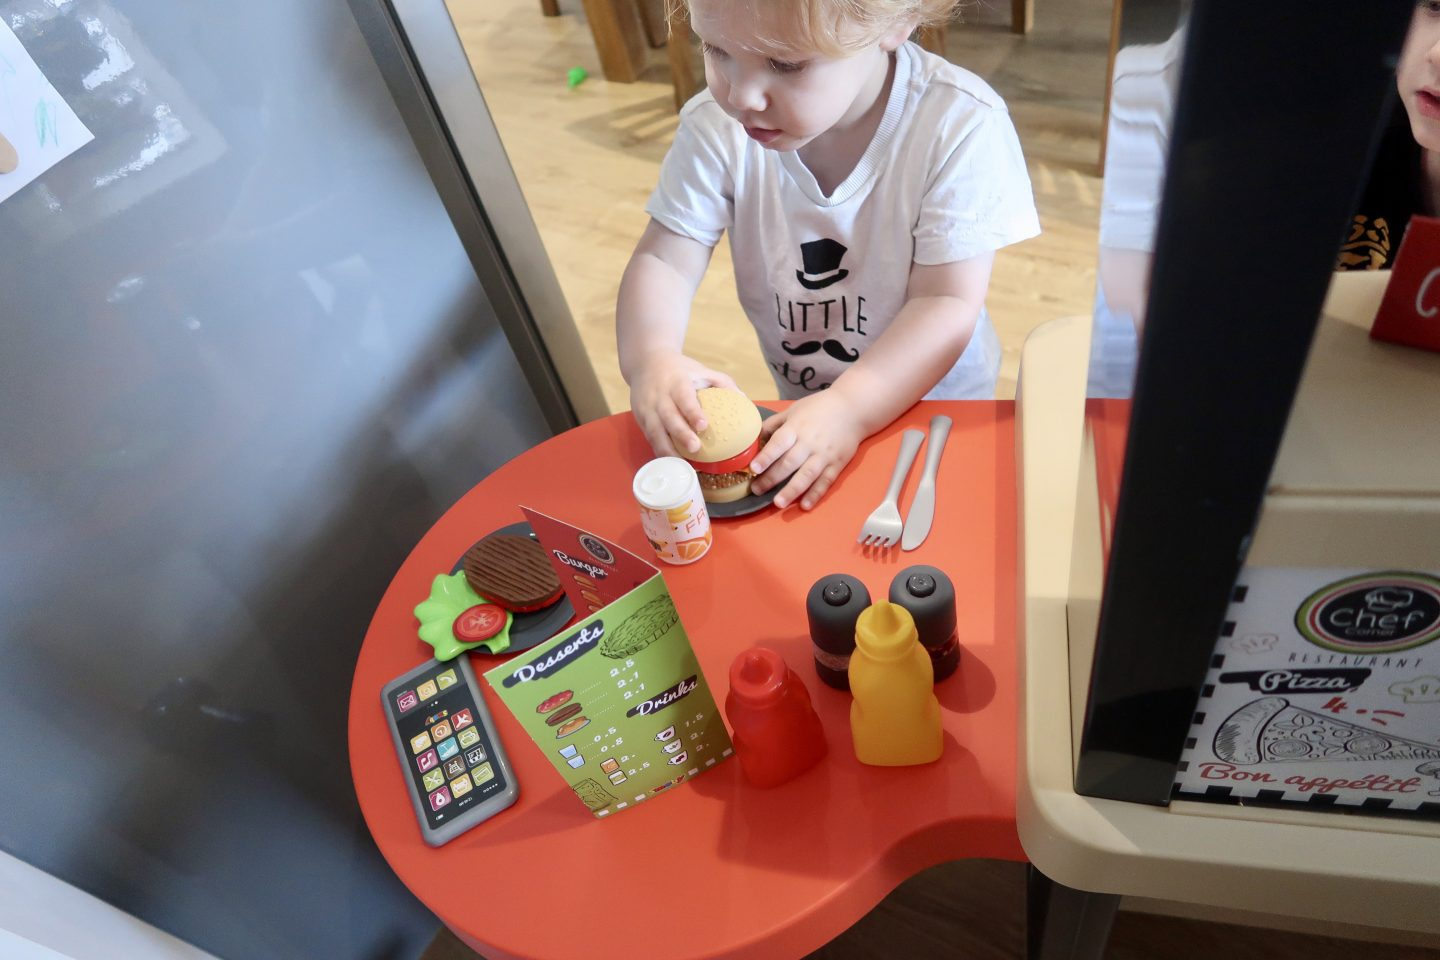 A child sitting at the table of a toy restaurant with a plastic burger and condiements